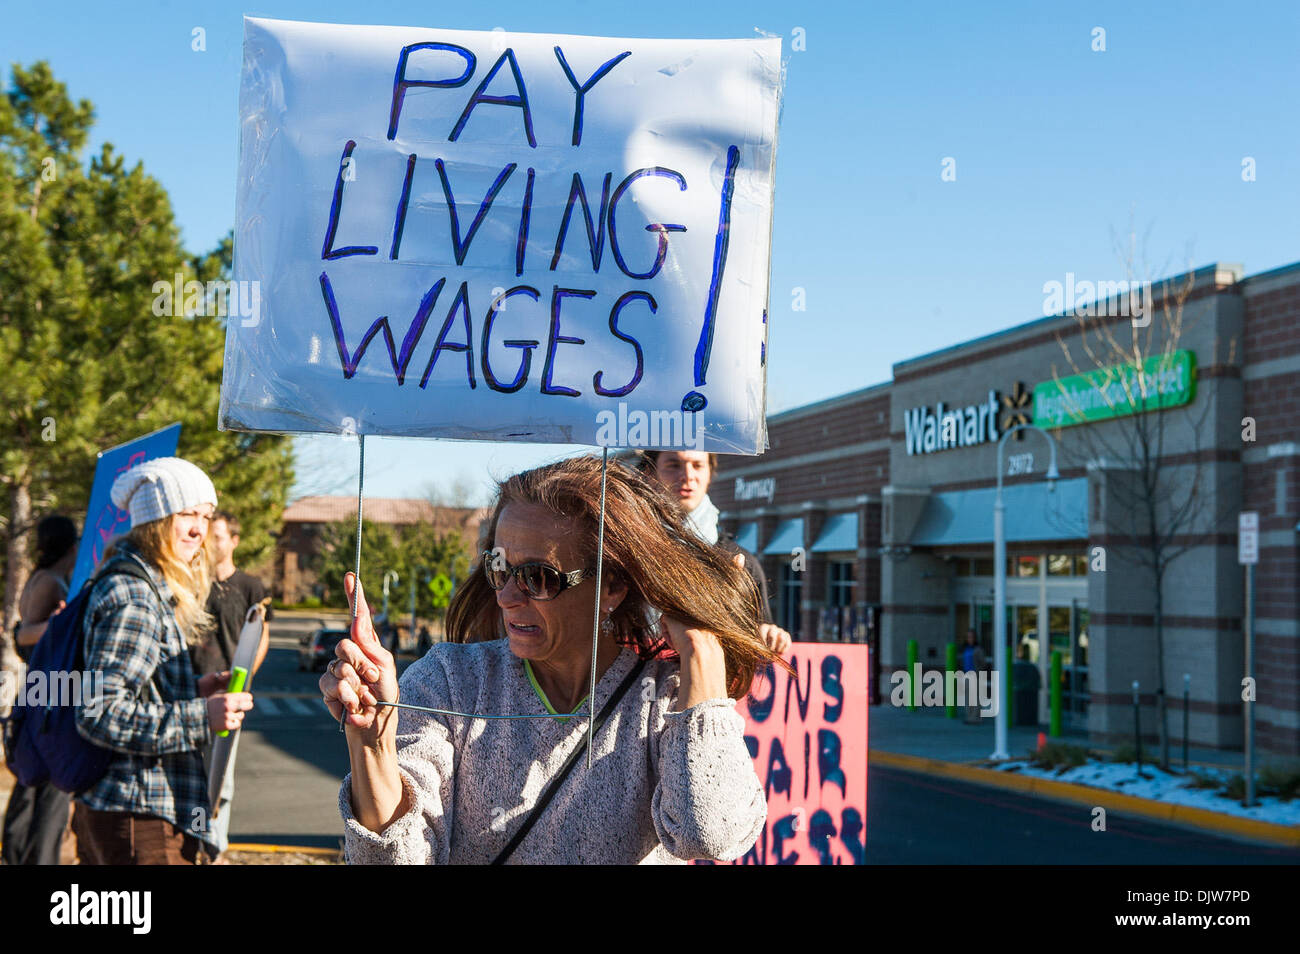 Walmart Employees Stock Photos & Walmart Employees Stock Images - Alamy